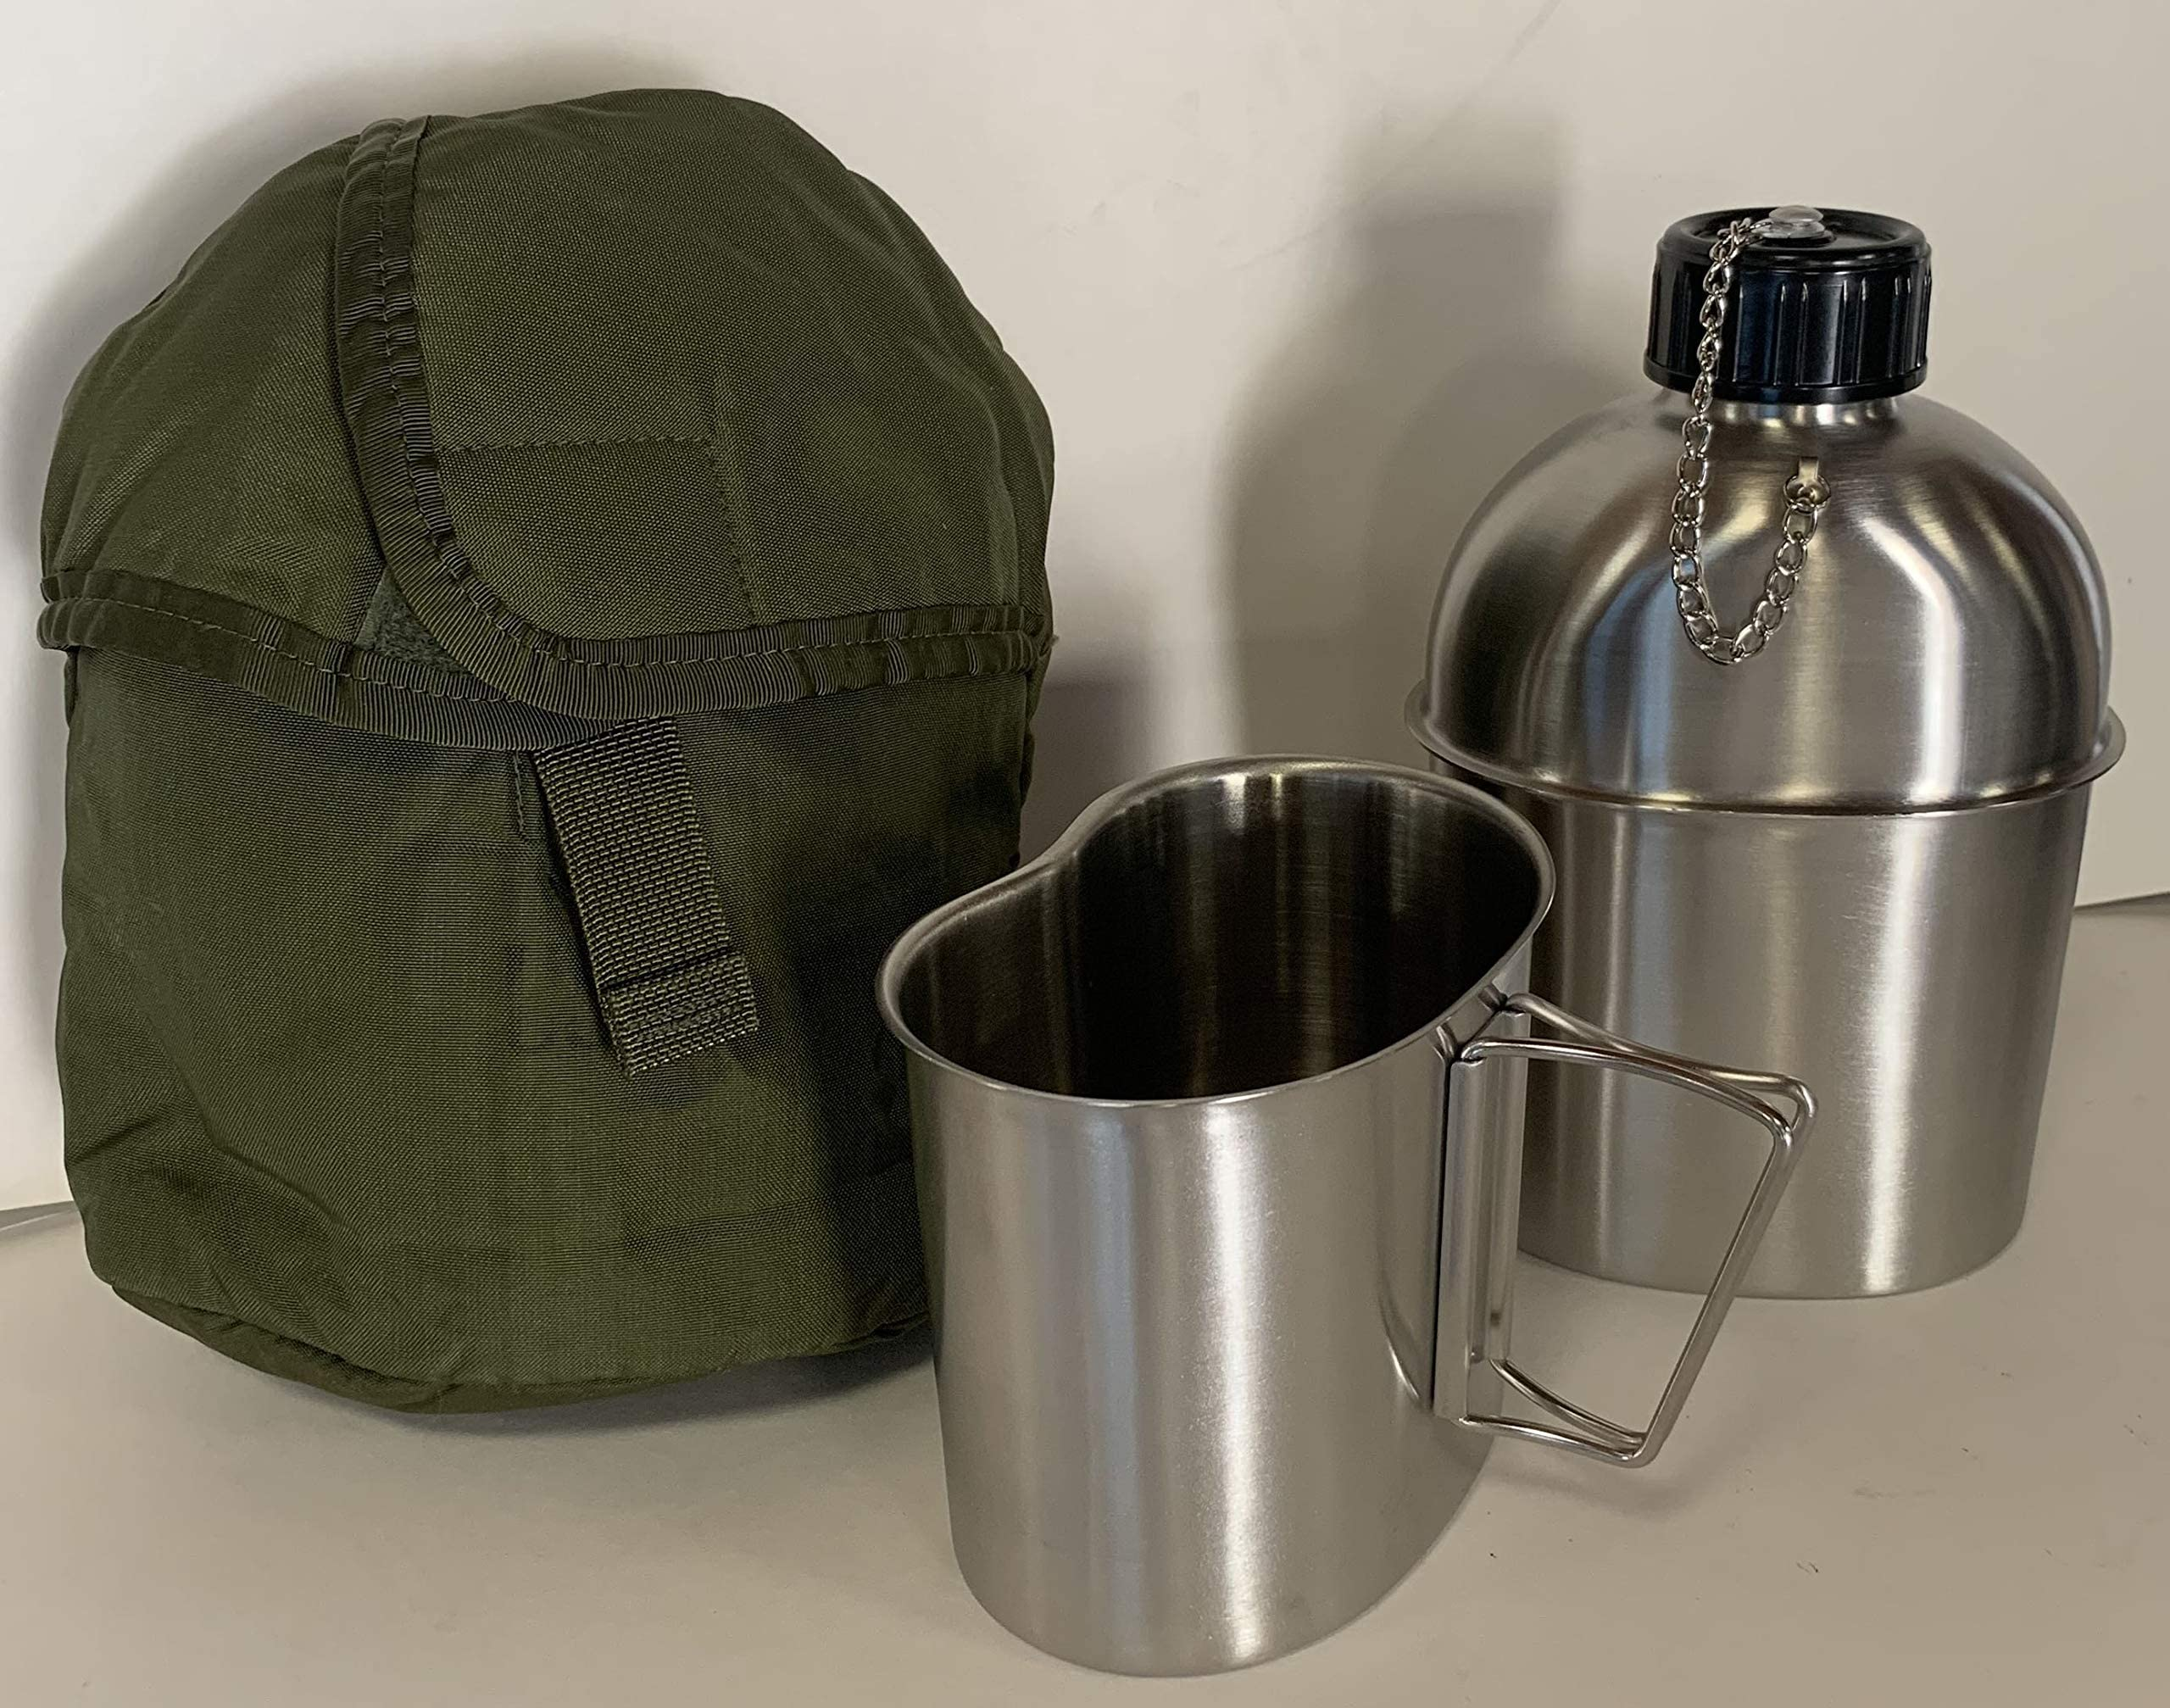 MILITARY STYLE STAINLESS STEEL CANTEEN WITH CUP 1.3LITER With Genuine G.I Nylon Od Color Insulated Canteen Cover KIT. 44oz.